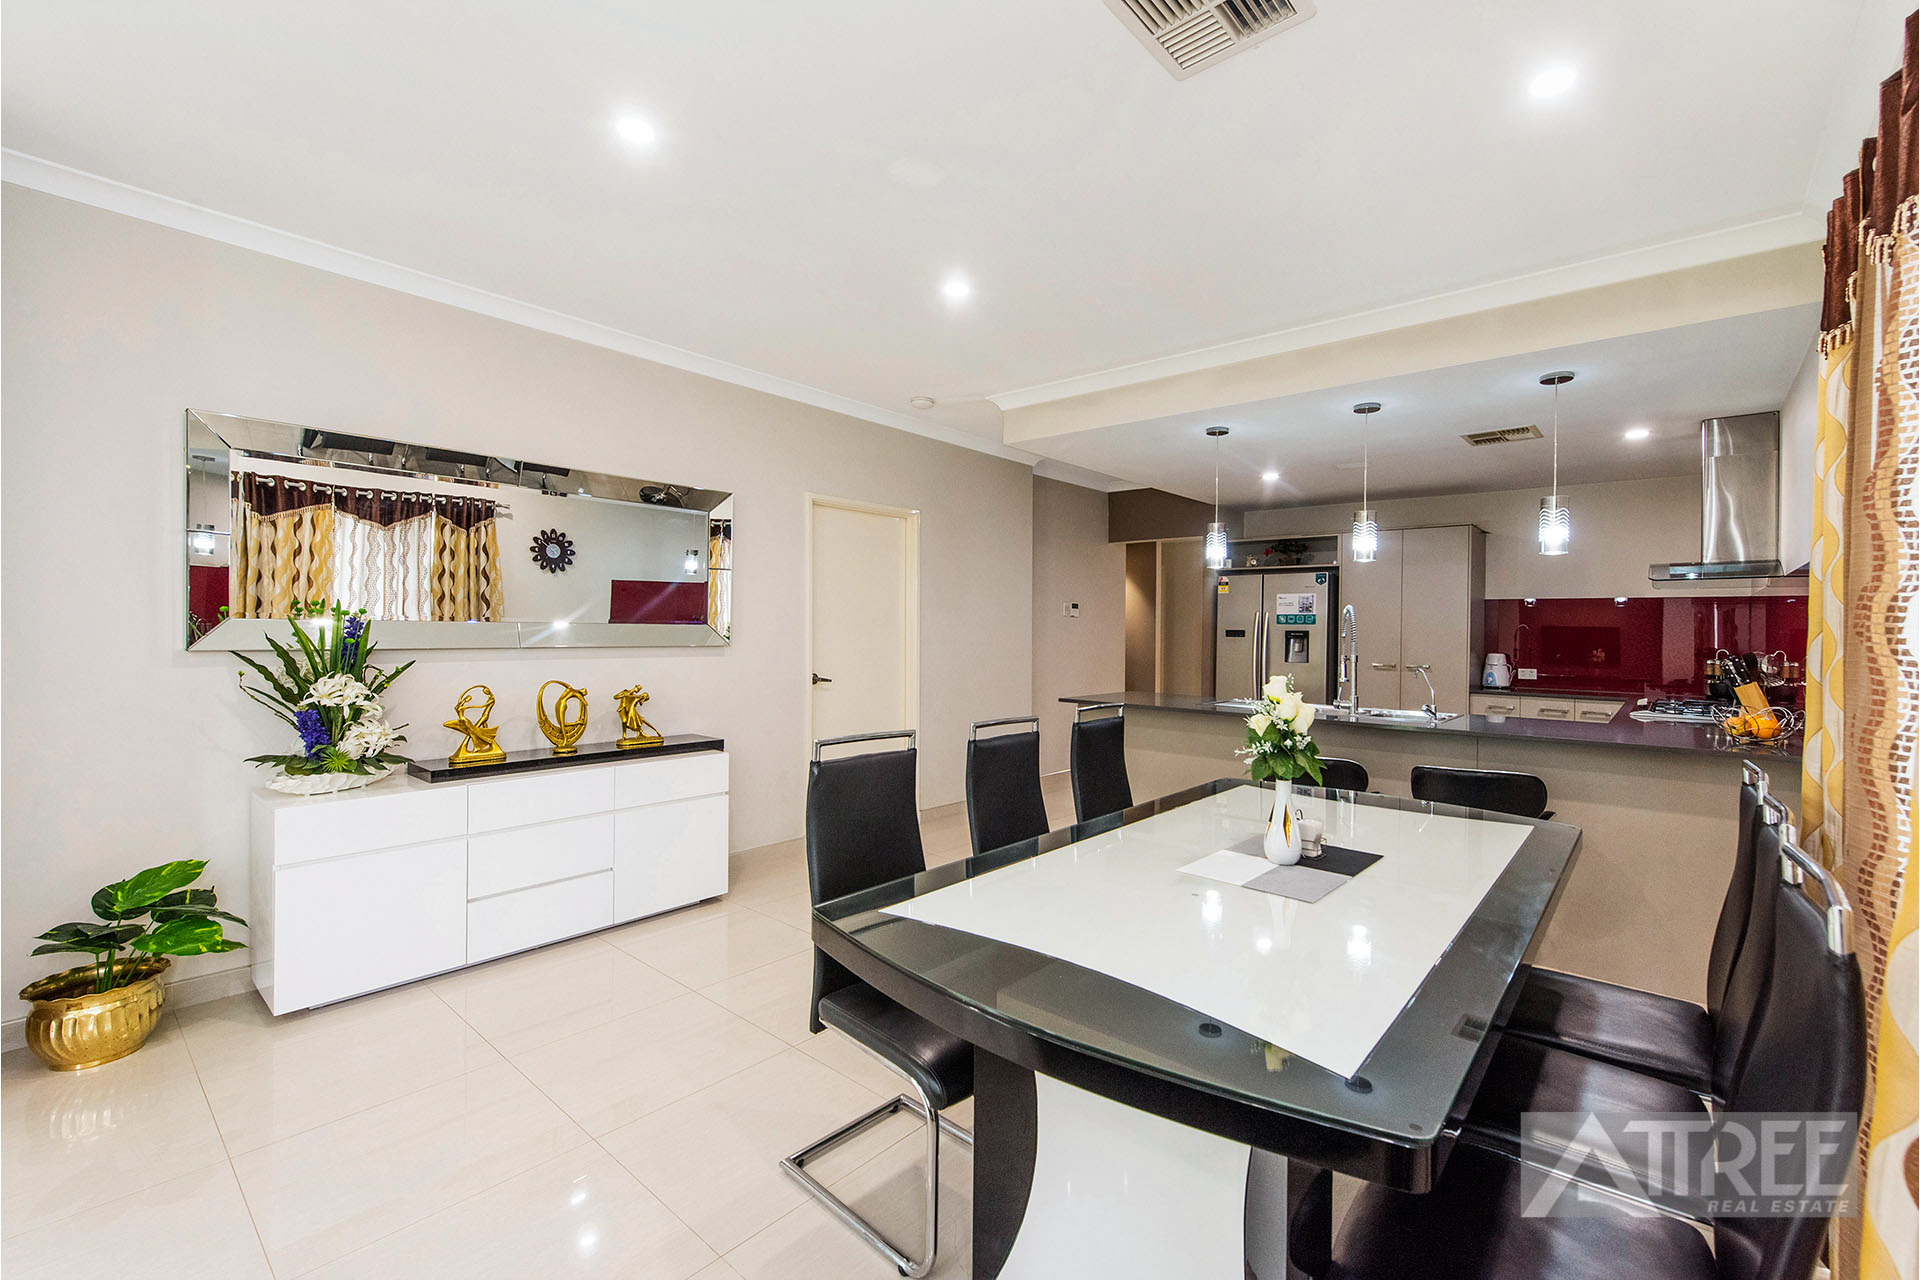 Property for sale in HARRISDALE, 11 Gleeson Way : Attree Real Estate